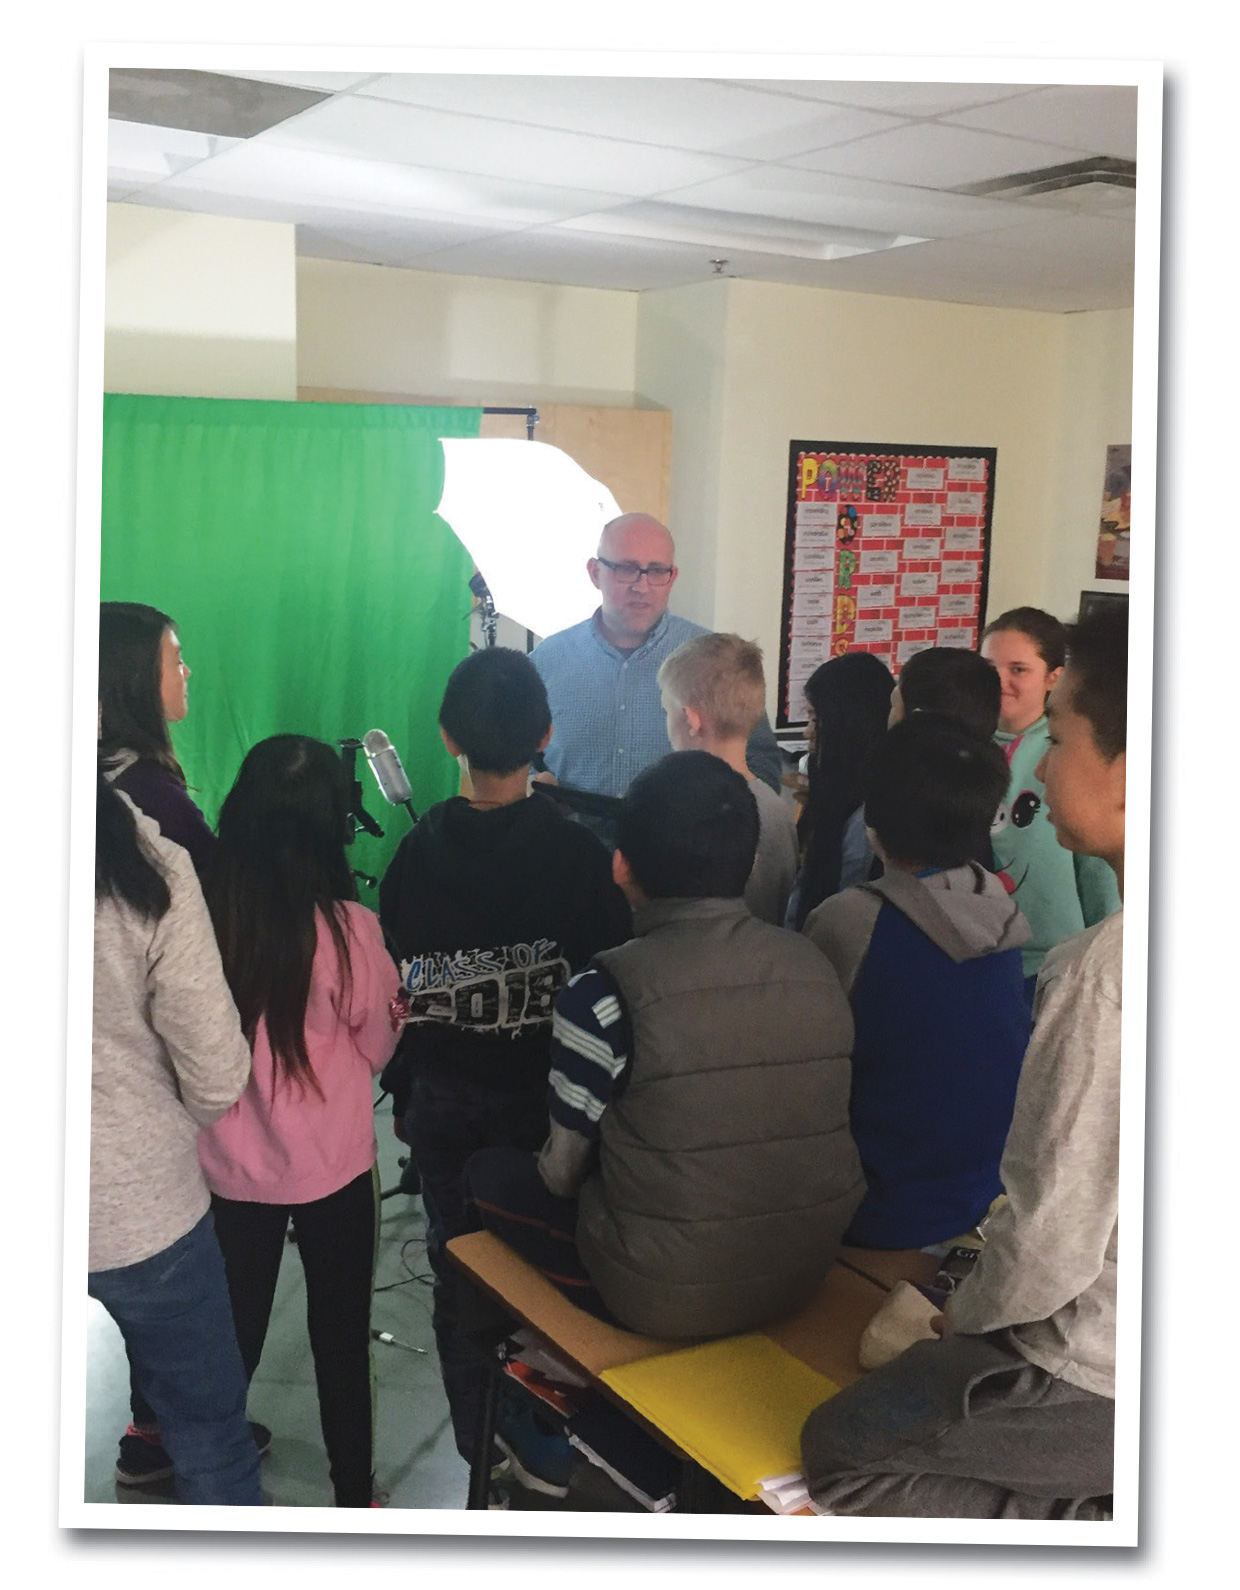 John Knox students learn about digital media and video editing.